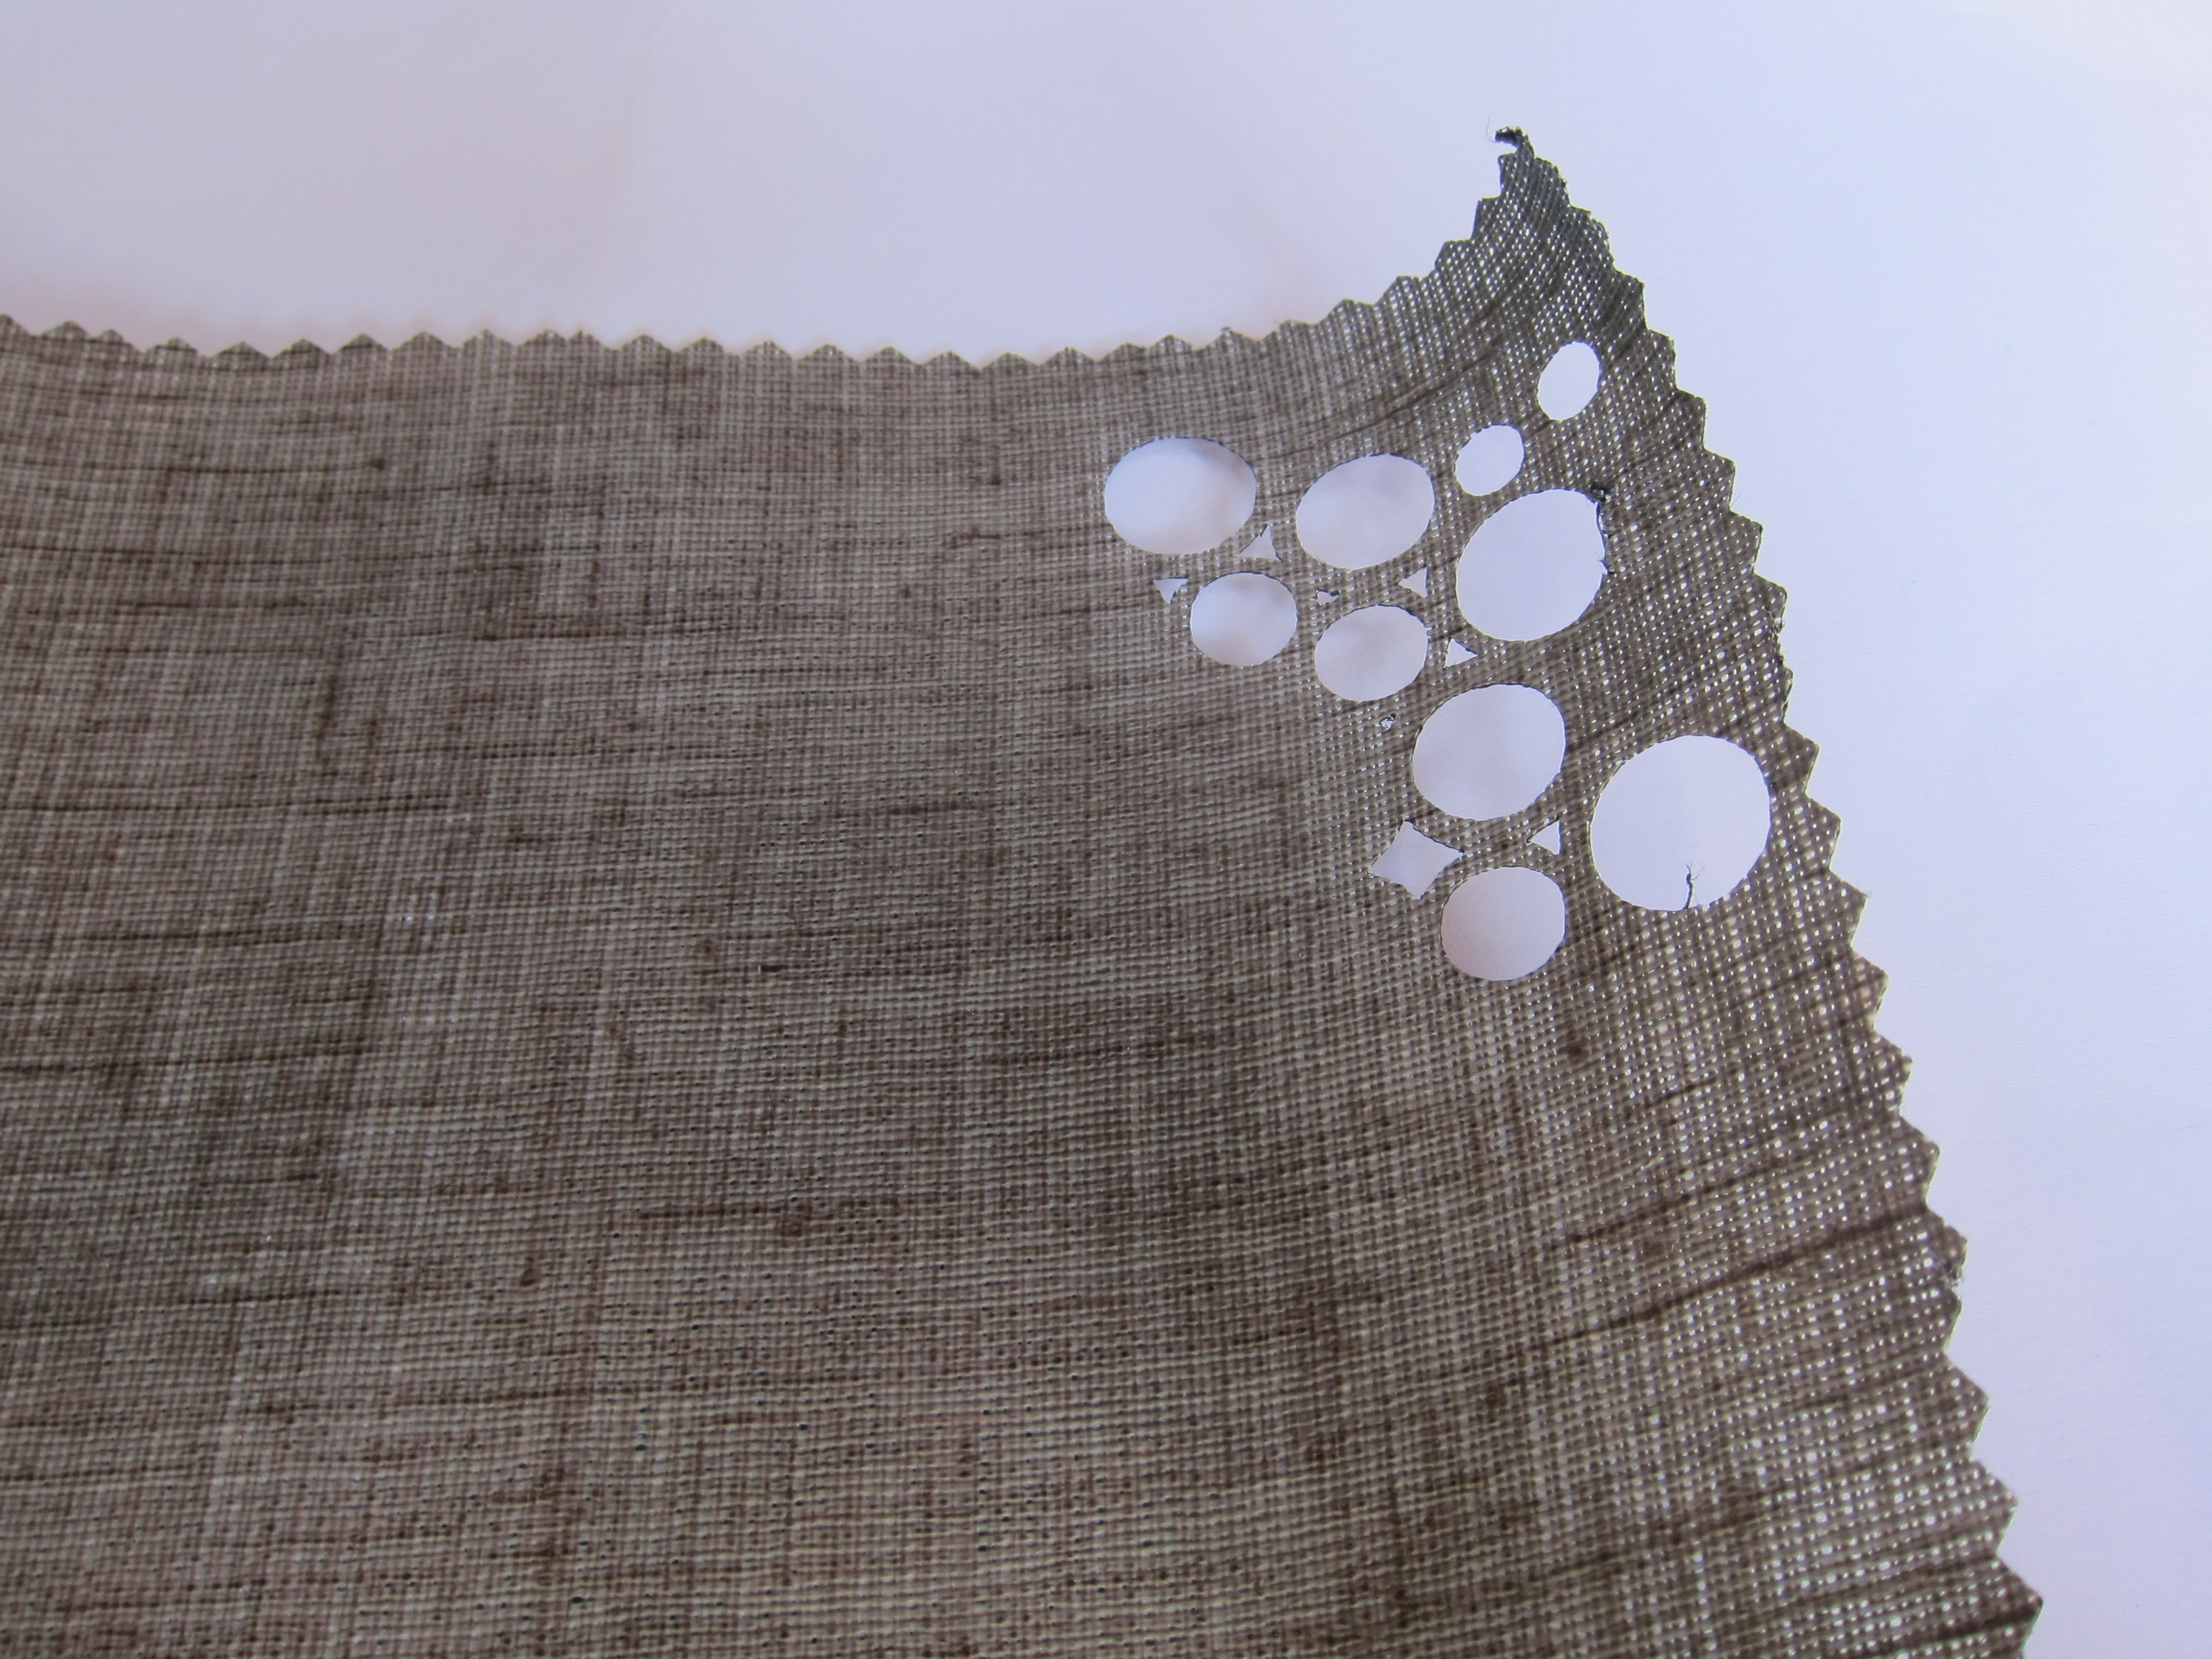 WS1 3: Textile meets digital fabrication: 3D printing and